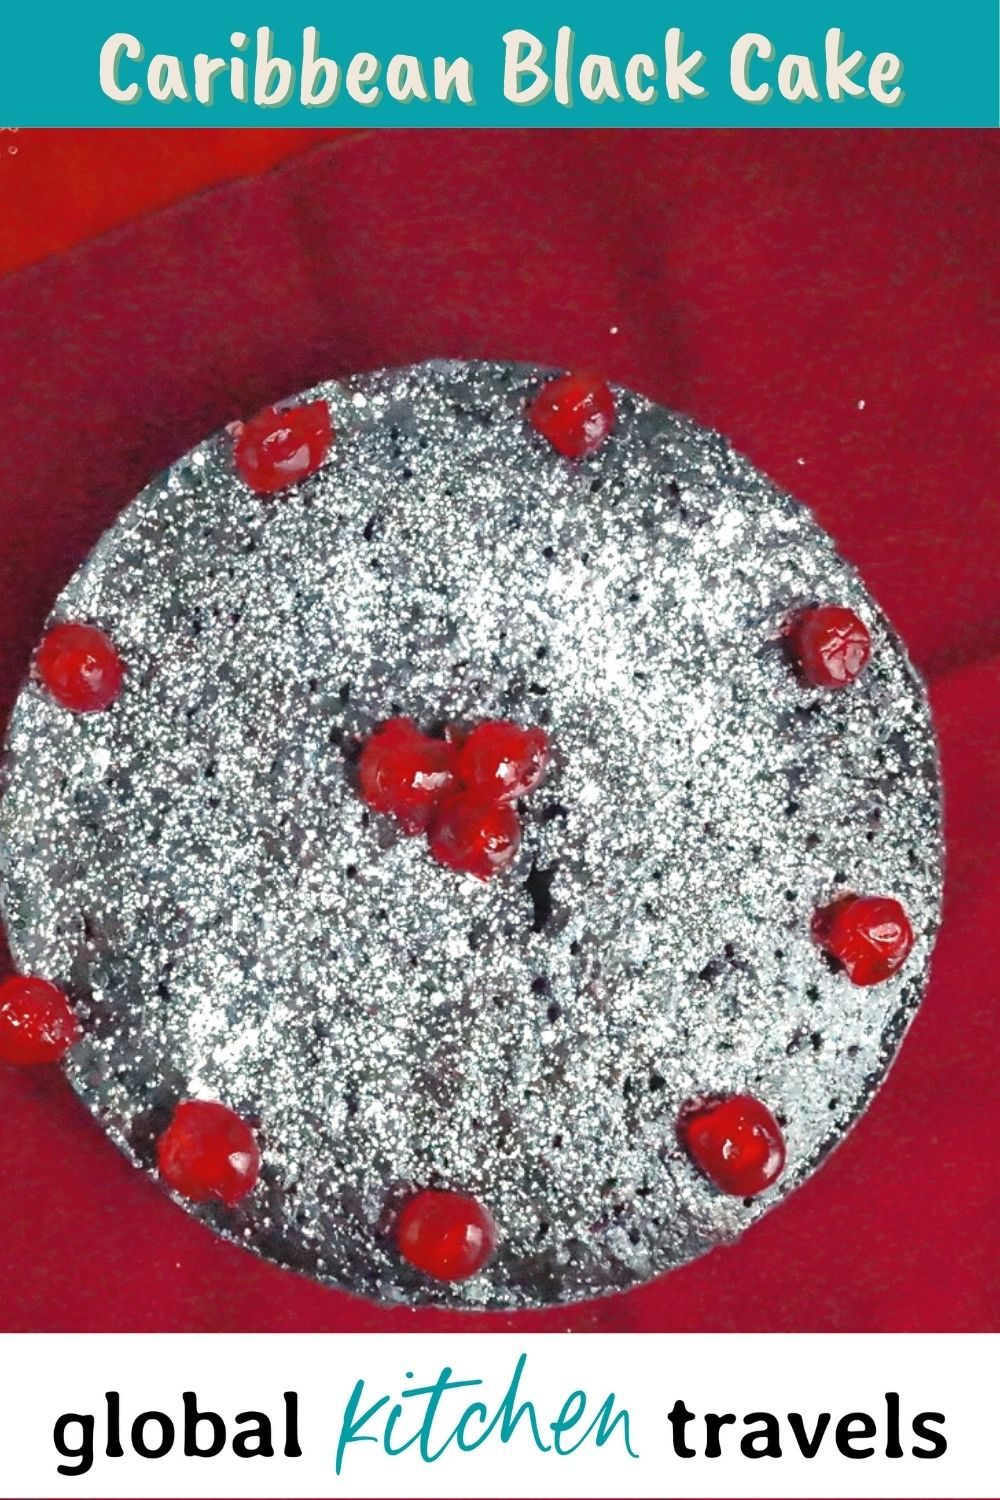 Caribbean Fruit Cake with text